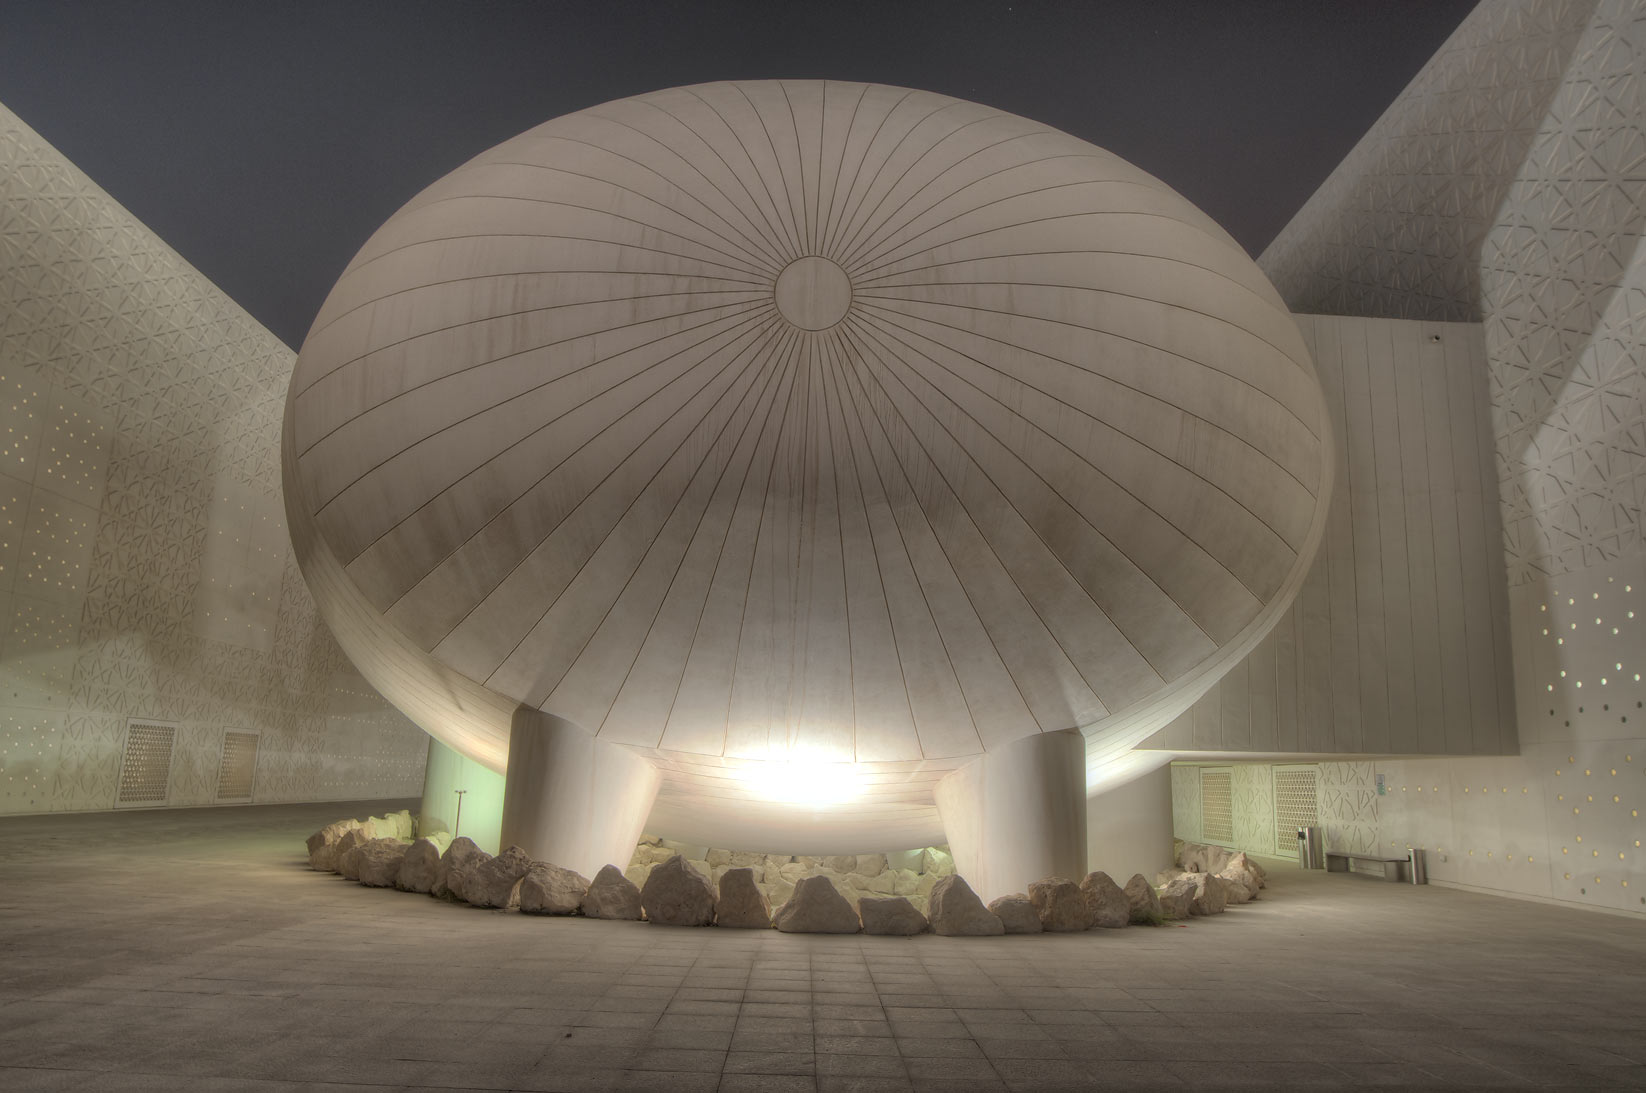 Ovoid structure of Weill Cornell Medical College...City campus at evening. Doha, Qatar